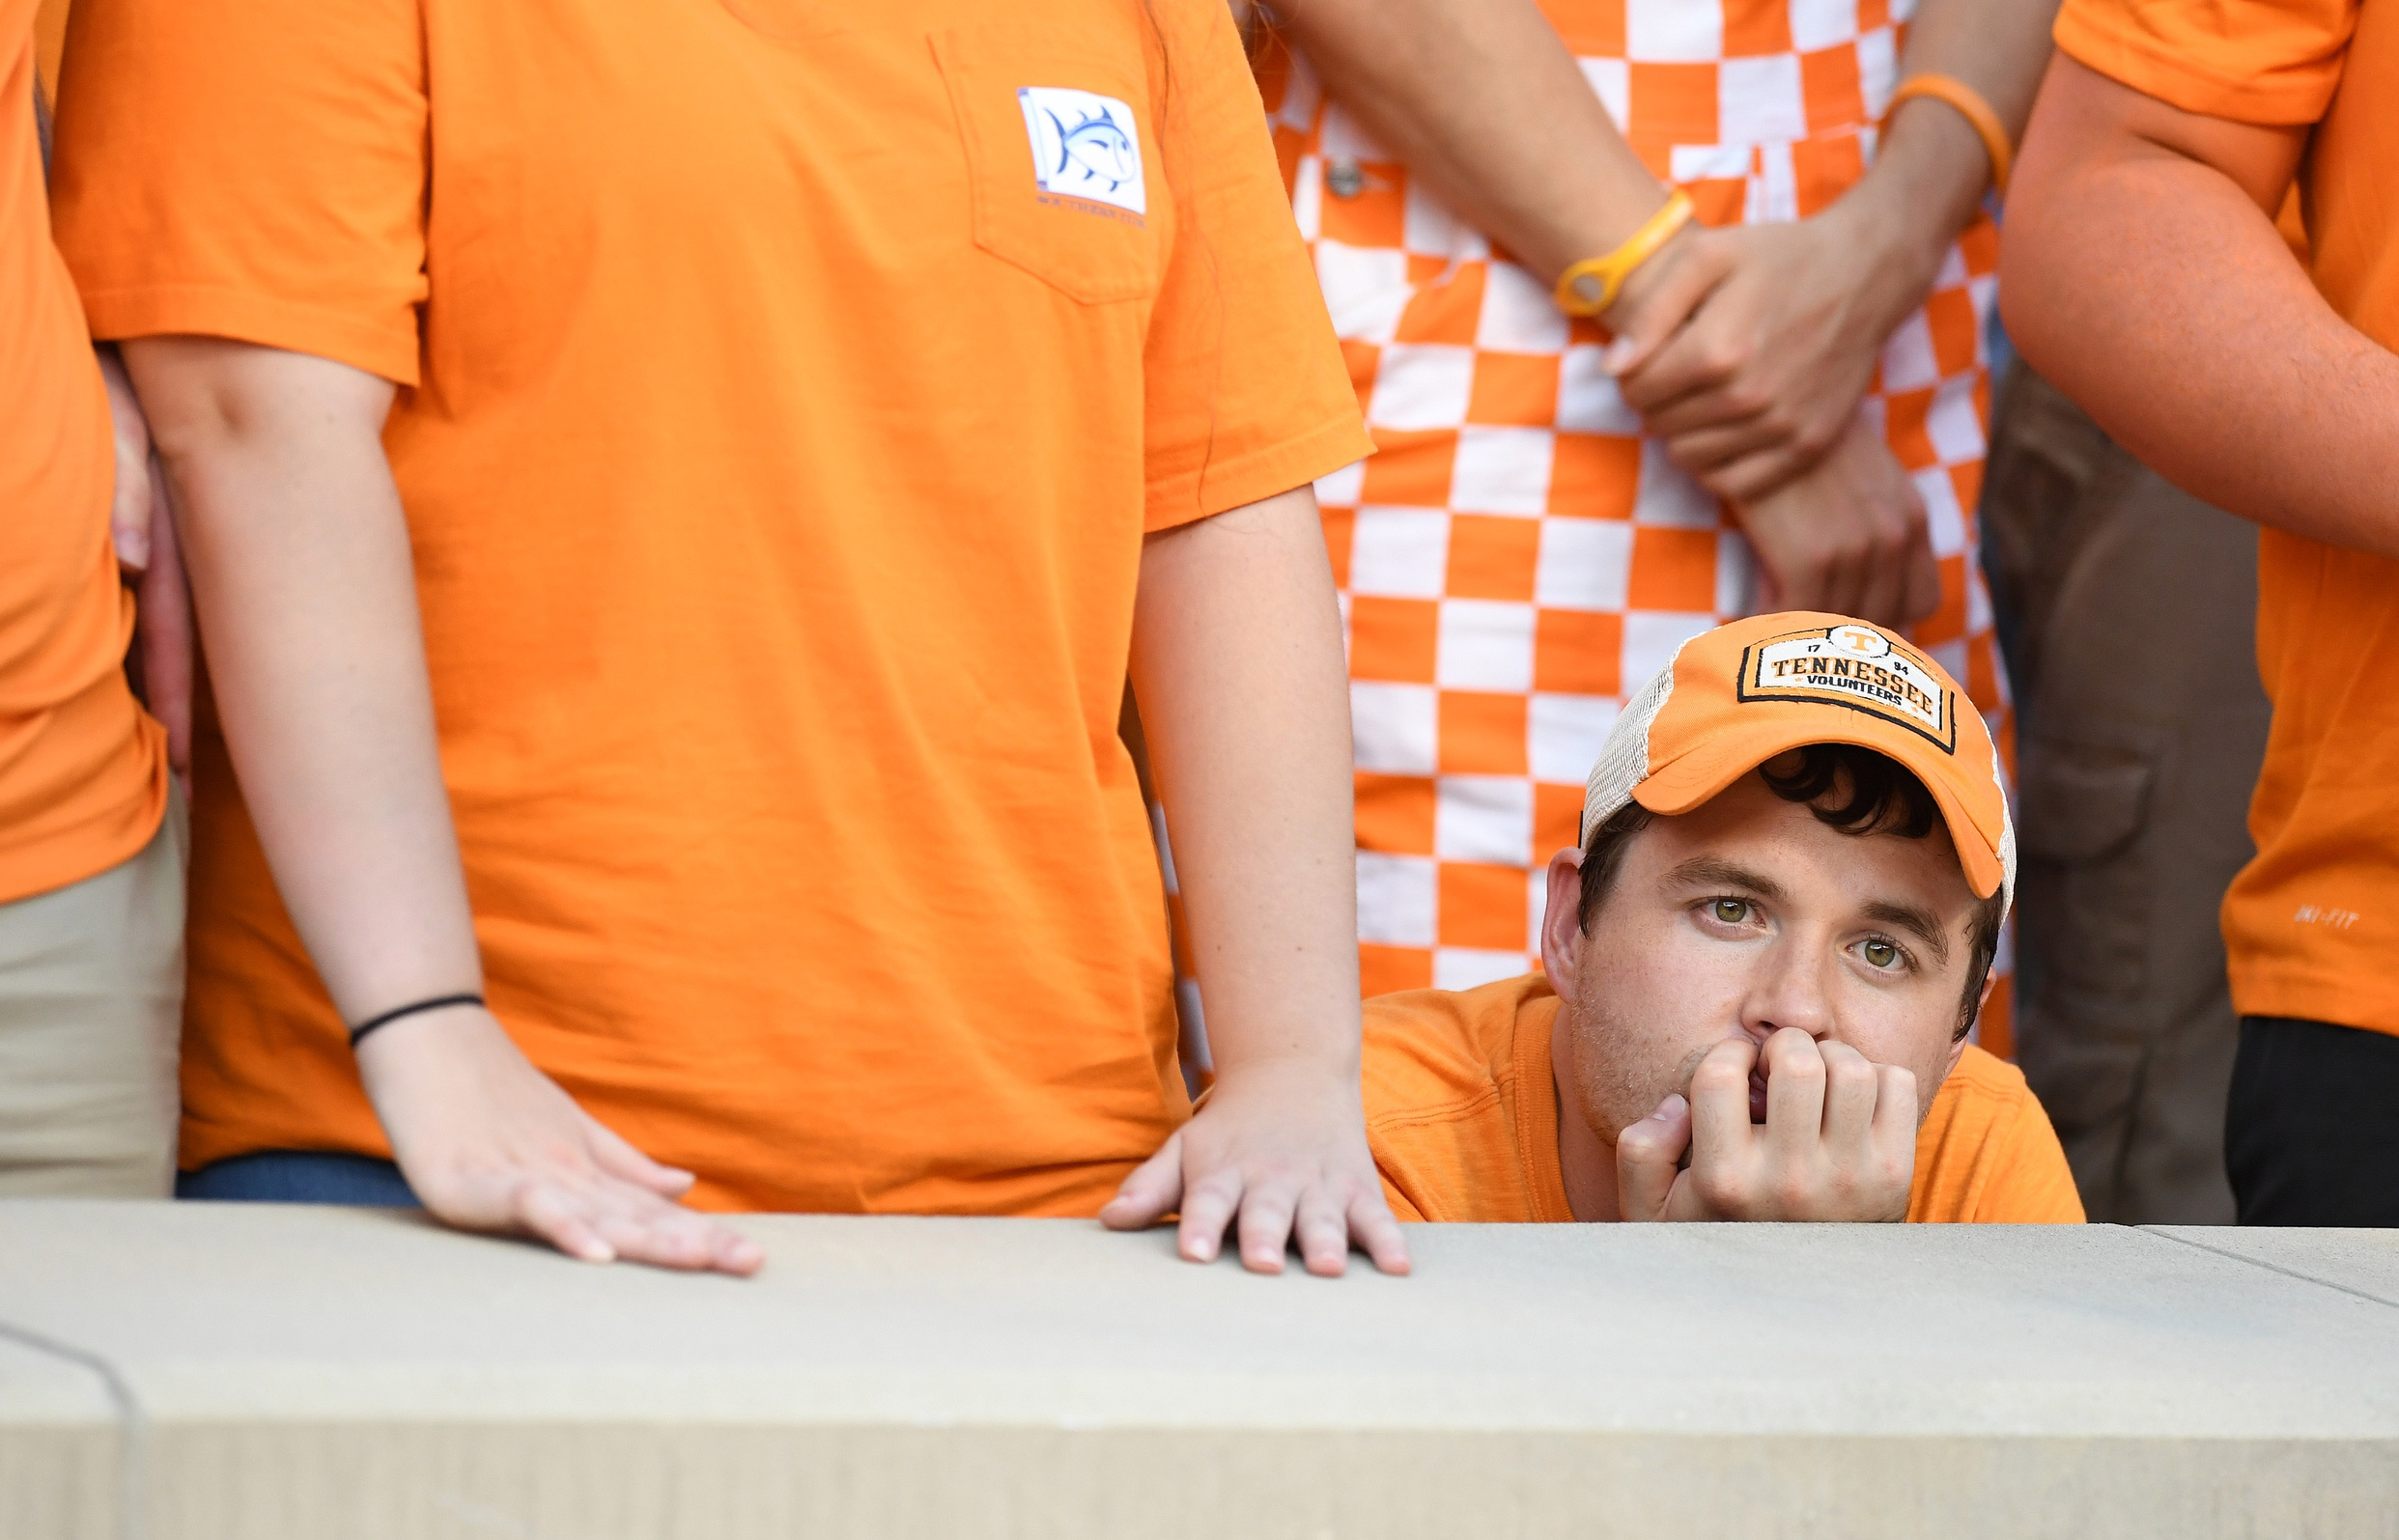 Oct 15, 2016; Knoxville, TN, USA; against the Tennessee Volunteers during the third quarter at Neyland Stadium. Mandatory Credit: John David Mercer-USA TODAY Sports